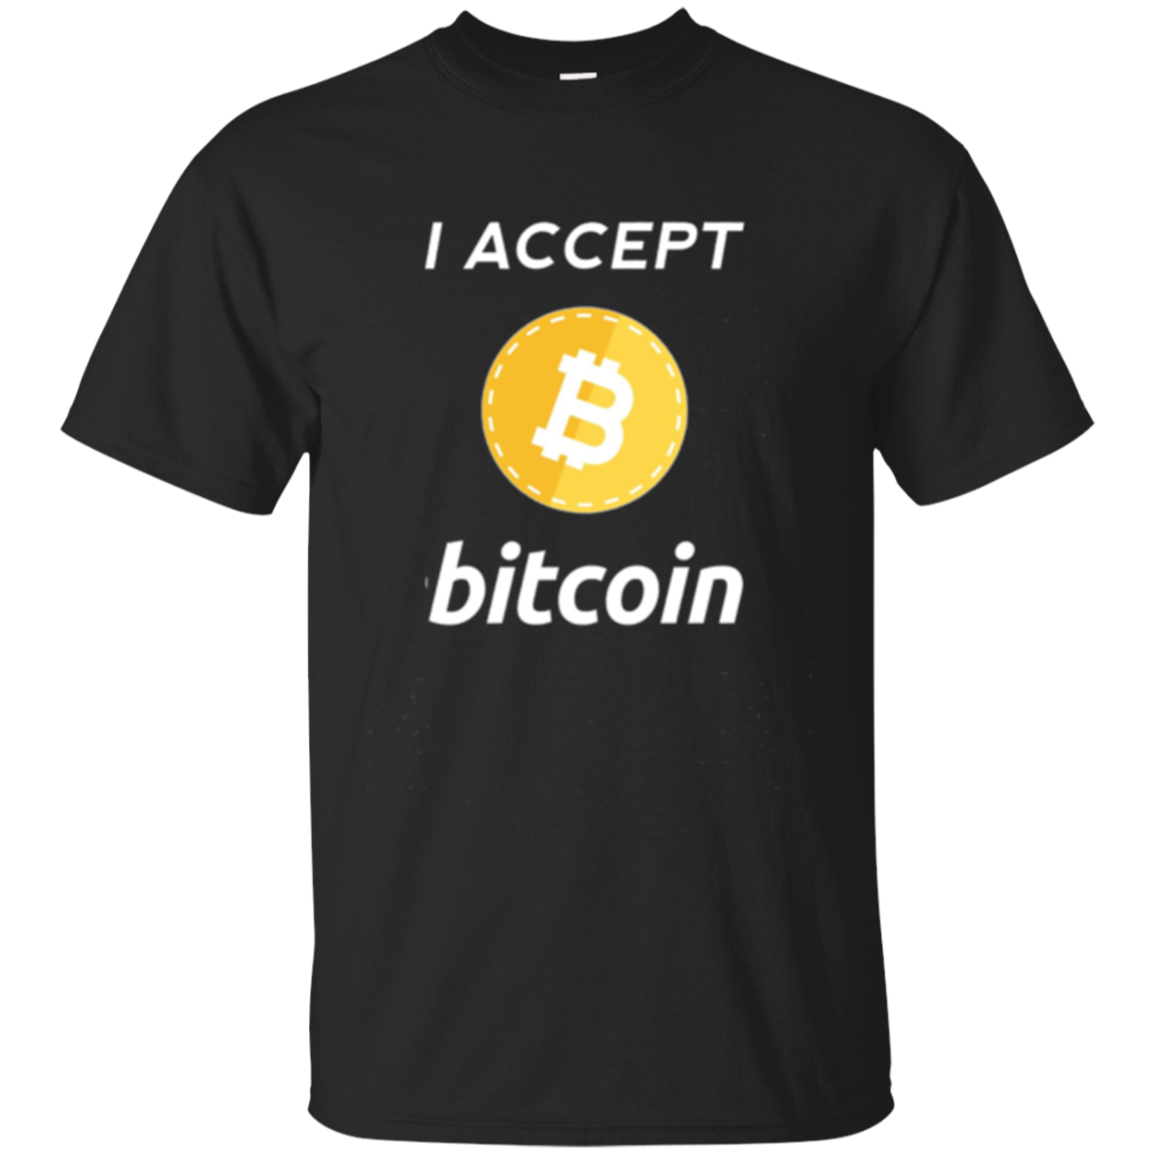 I ACCEPT BITCOIN funny T-shirt Long Sleeve for Owner Miner